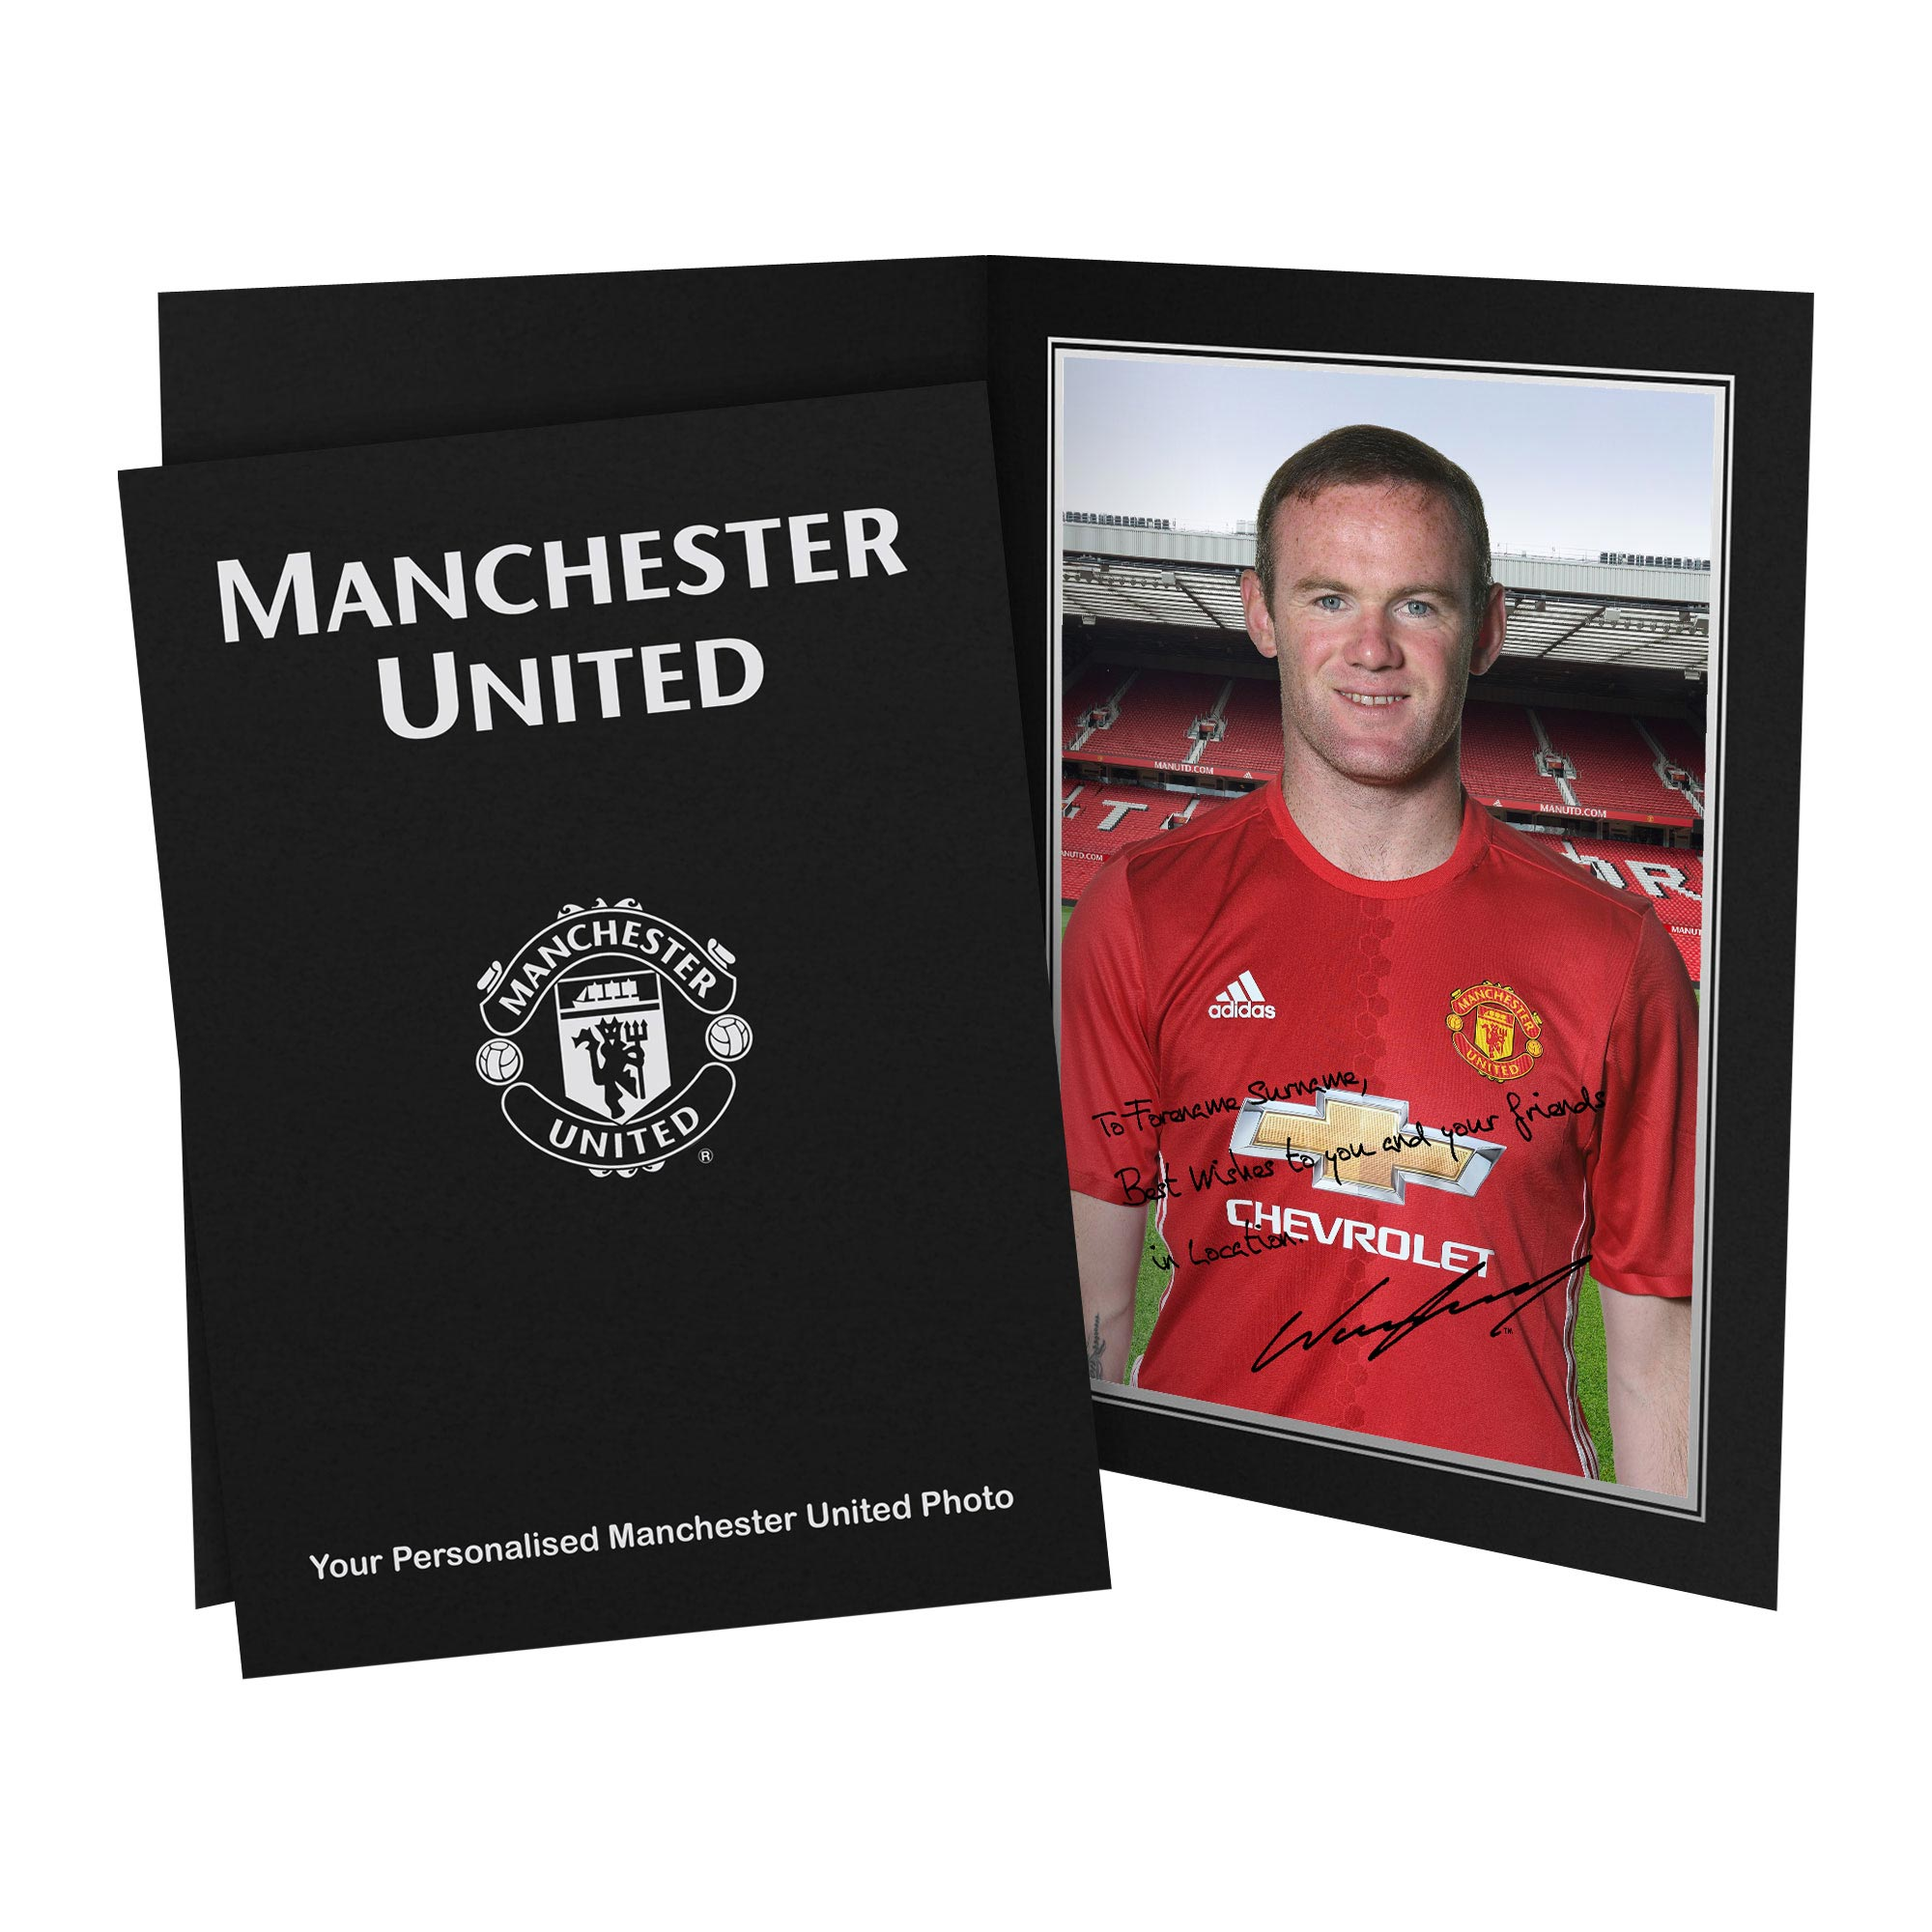 Manchester United Personalised Signature Photo In Presentation Folder - Rooney